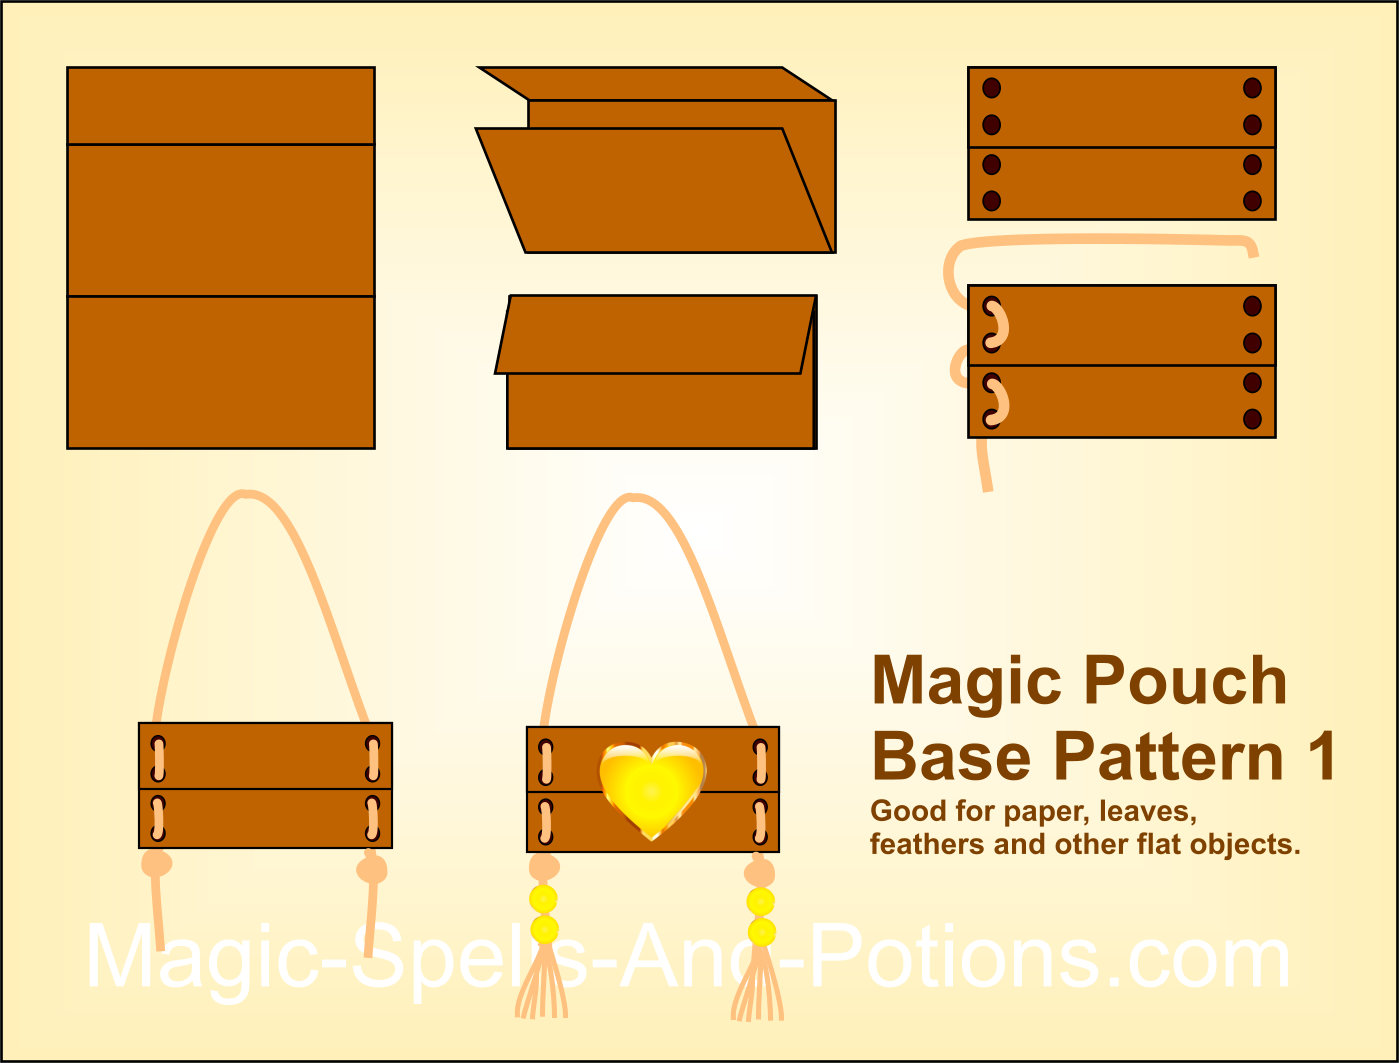 Simple fold over design magic pouch or medicine bag pattern 1